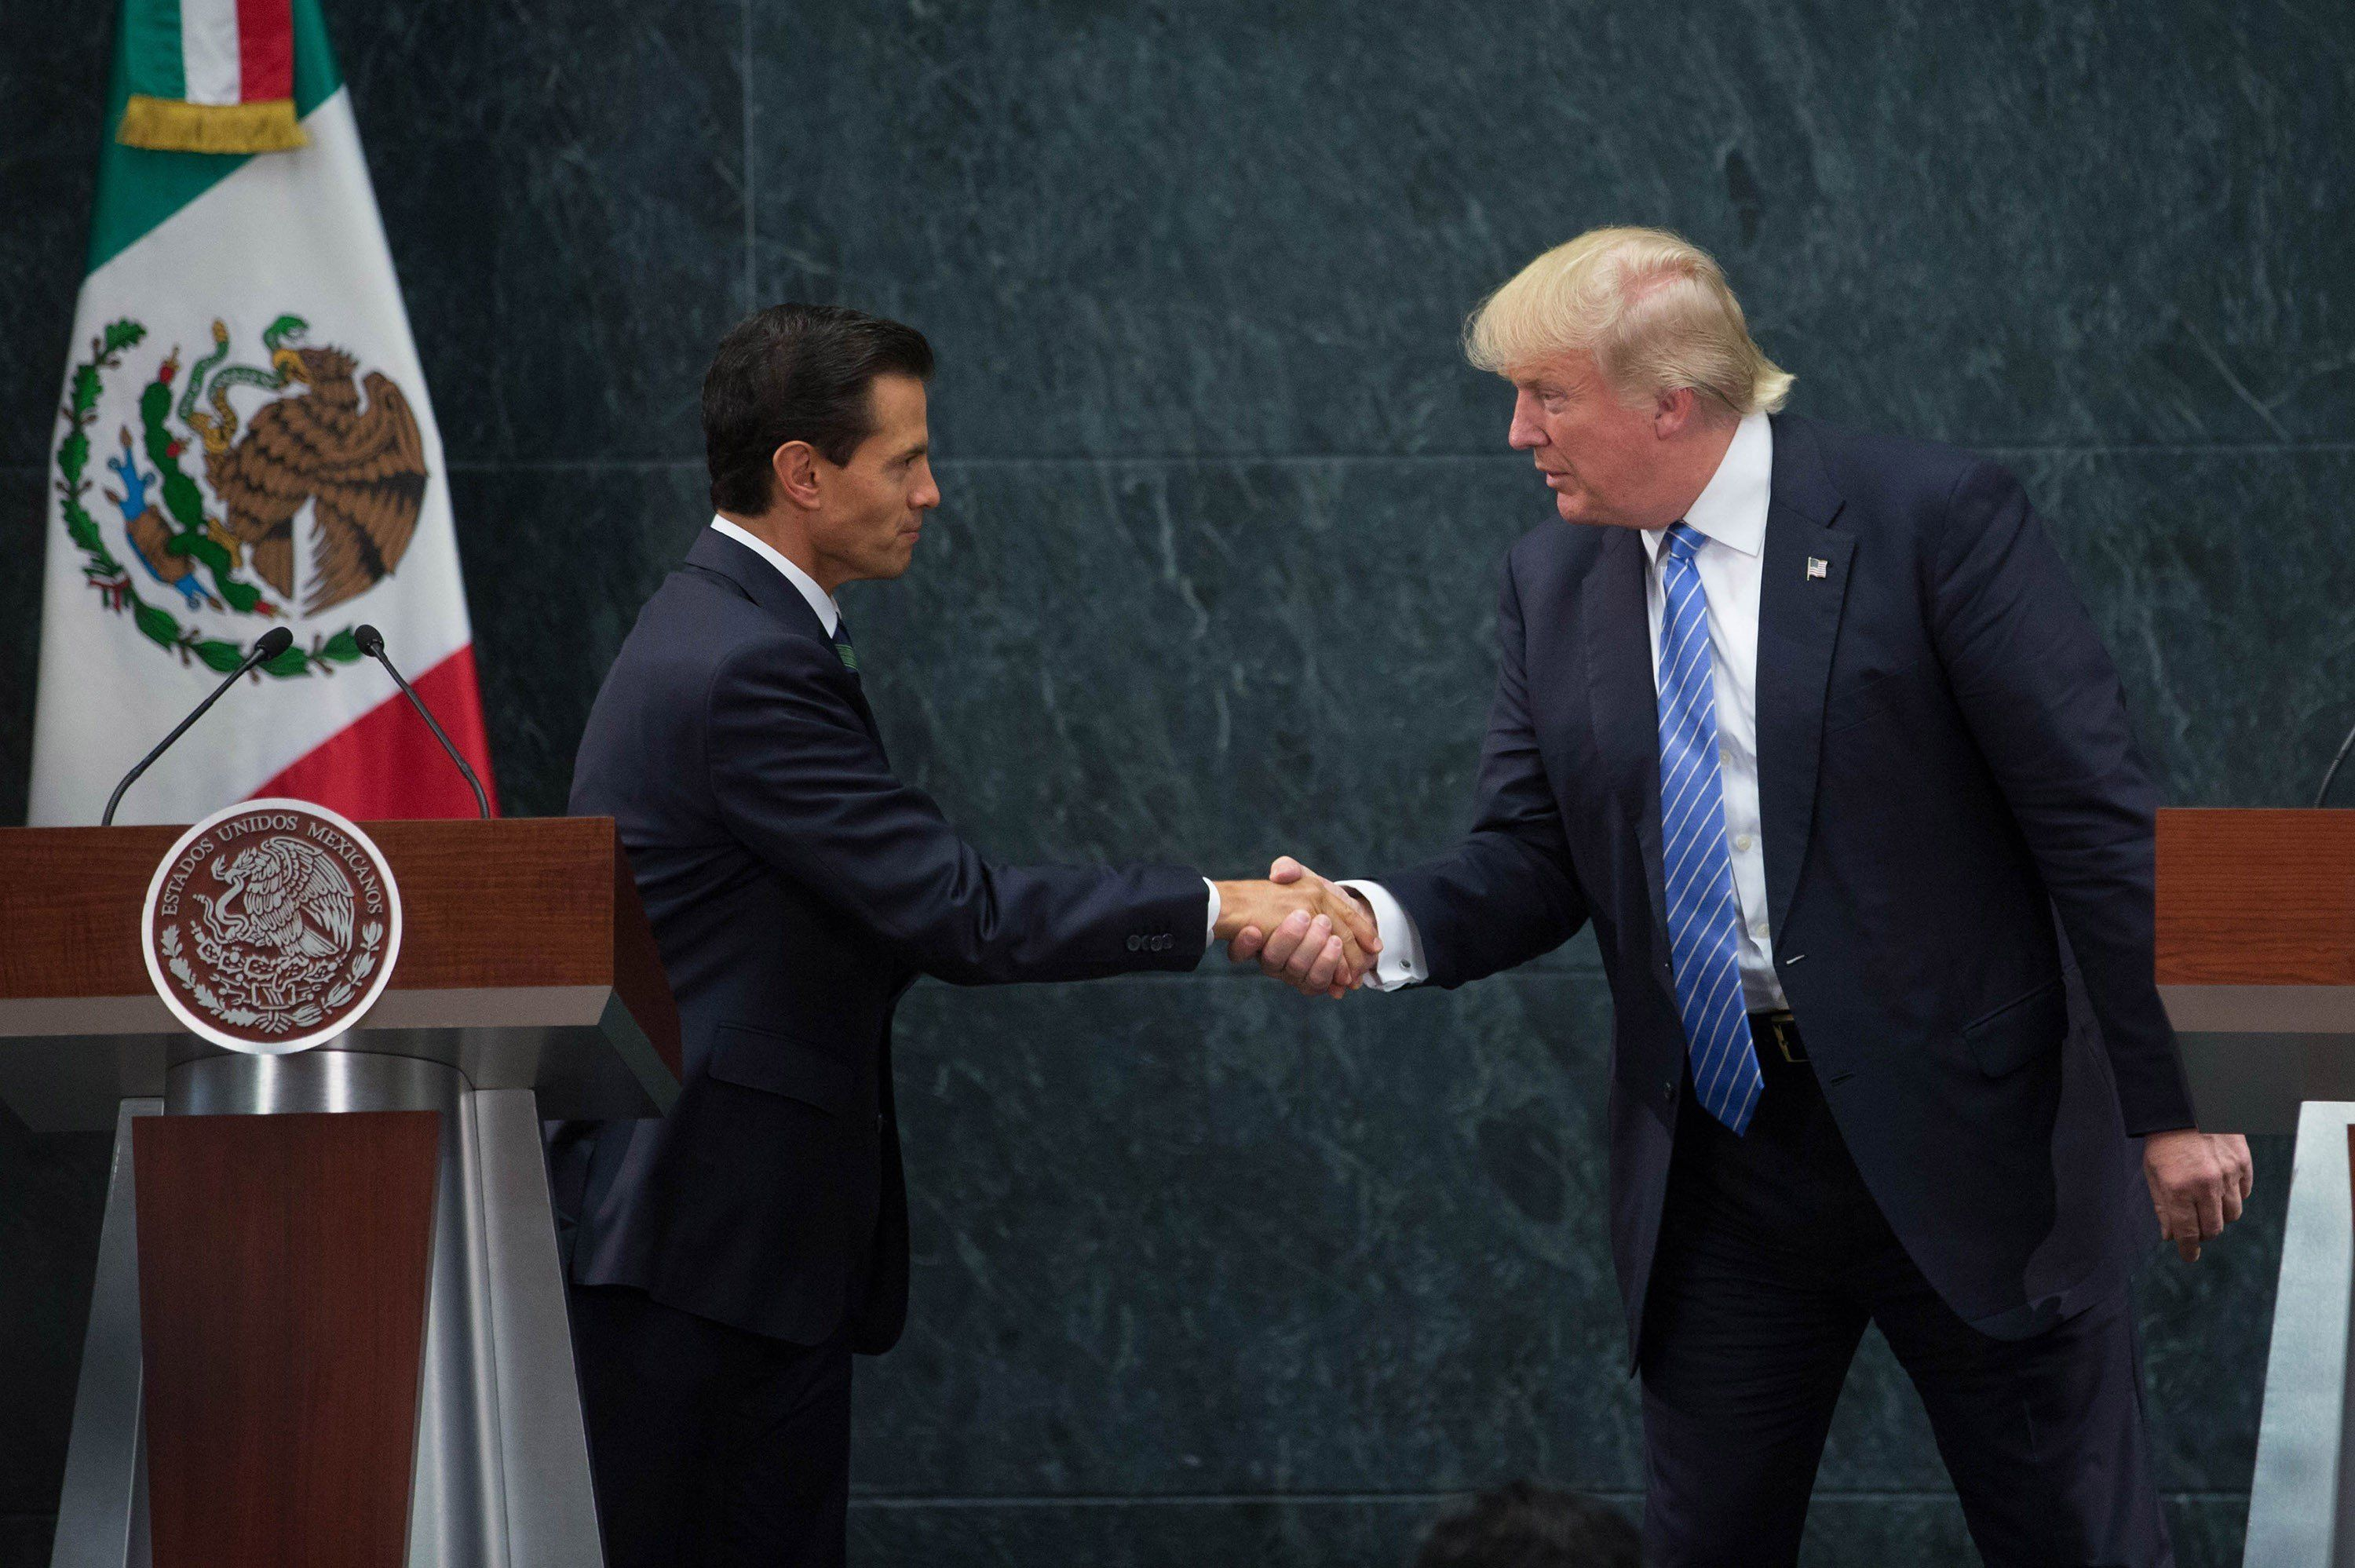 MEXICO CITY, MEXICO -  AUGUST 31 : President of Mexico Enrique Pena Nieto (L) and US Republican presidential candidate, Donald Trump attend a meeting at Los Pinos presidential residence, in Mexico City, Mexico on August 31, 2016. (Photo by Daniel Cardenas/Anadolu Agency/Getty Images)